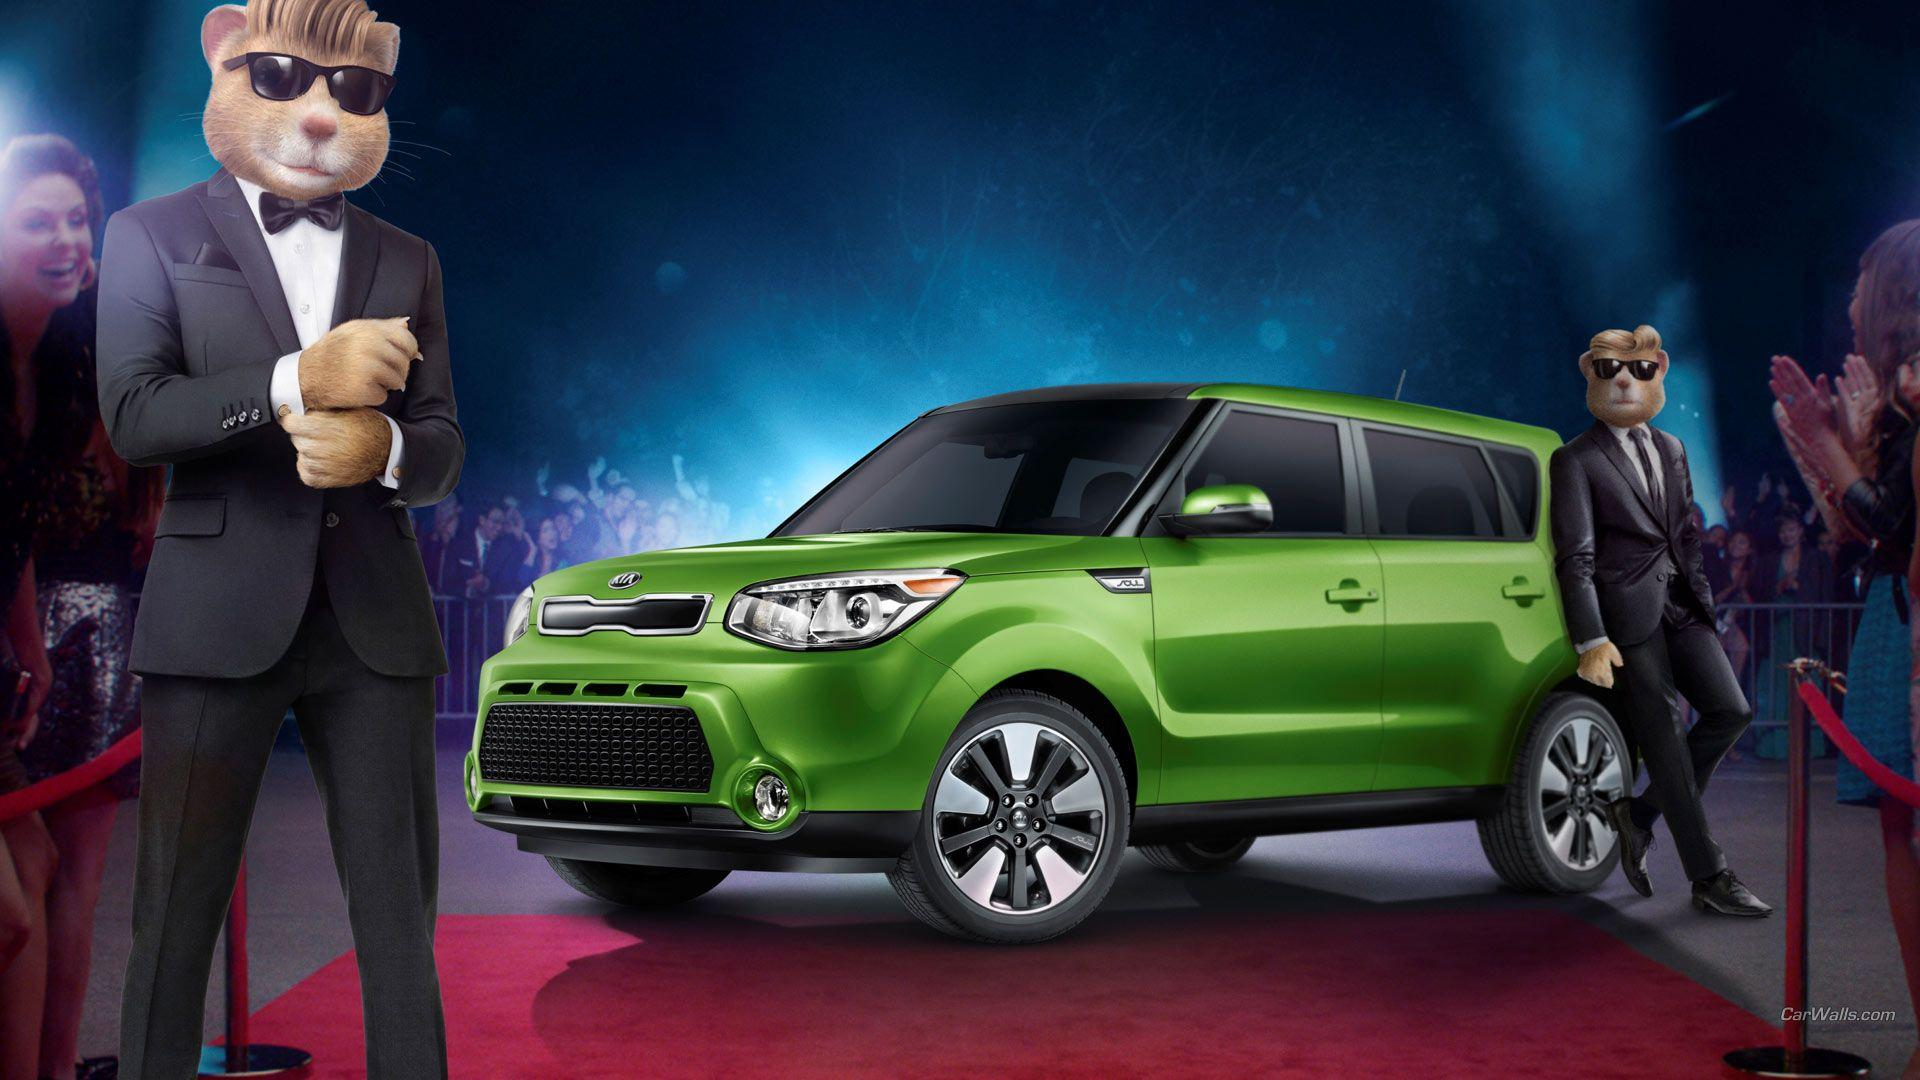 Kia Soul Full HD Wallpaper and Background Image | 1920x1080 | ID:449867